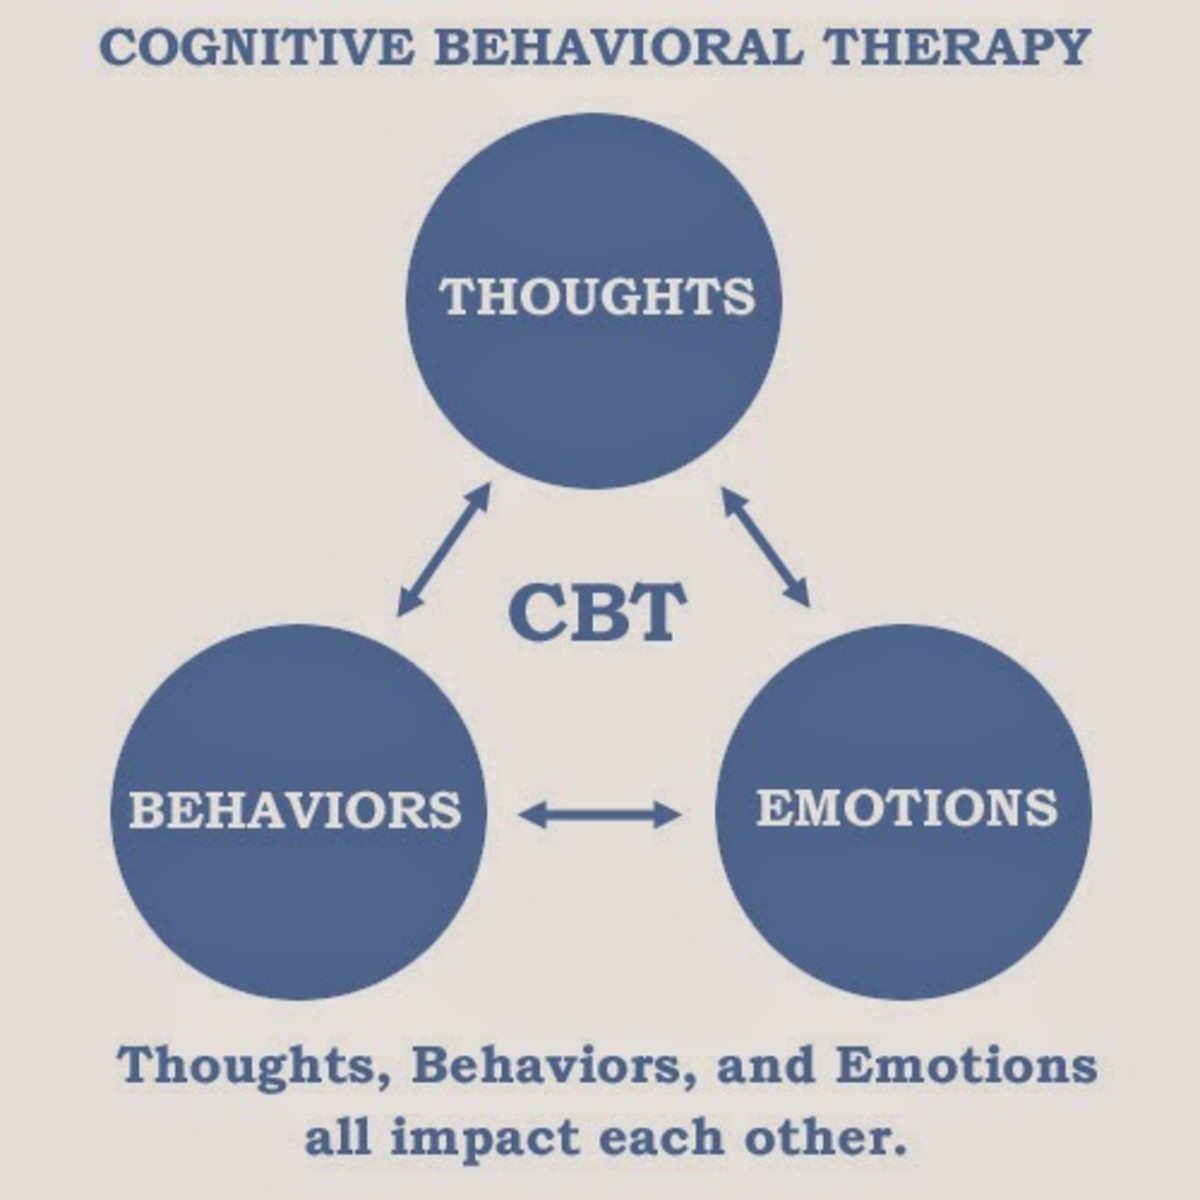 Cbt: Cognitive Behavior Therapy: A Tool for the Common Person